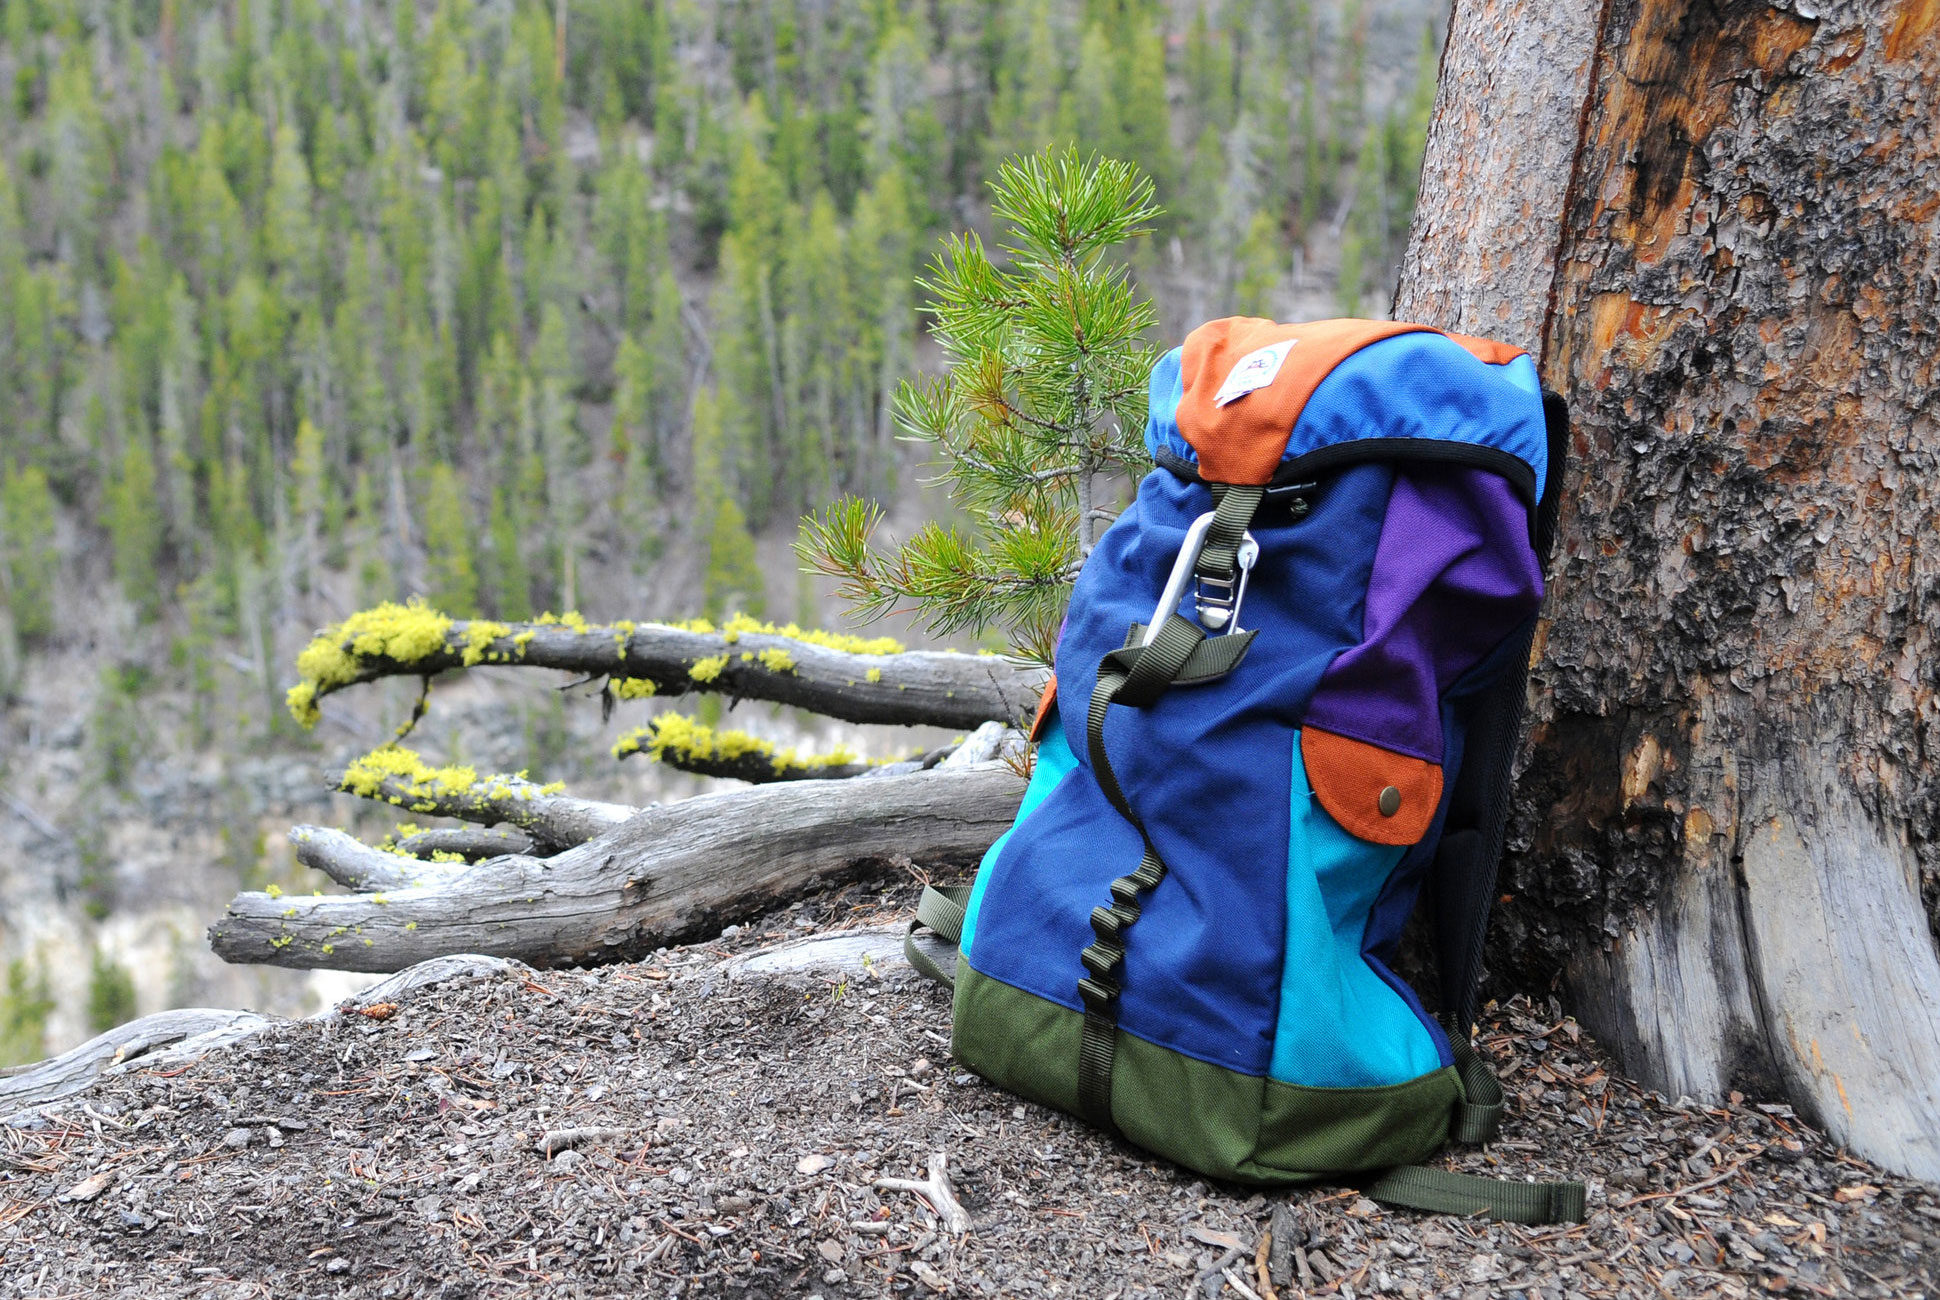 Why Is This Outdoor Brand Getting Pegged As a Fashion Label? - Crusty rock climbers and snooty fashionistas agree on these backpacks, and that's kind of a miracle.